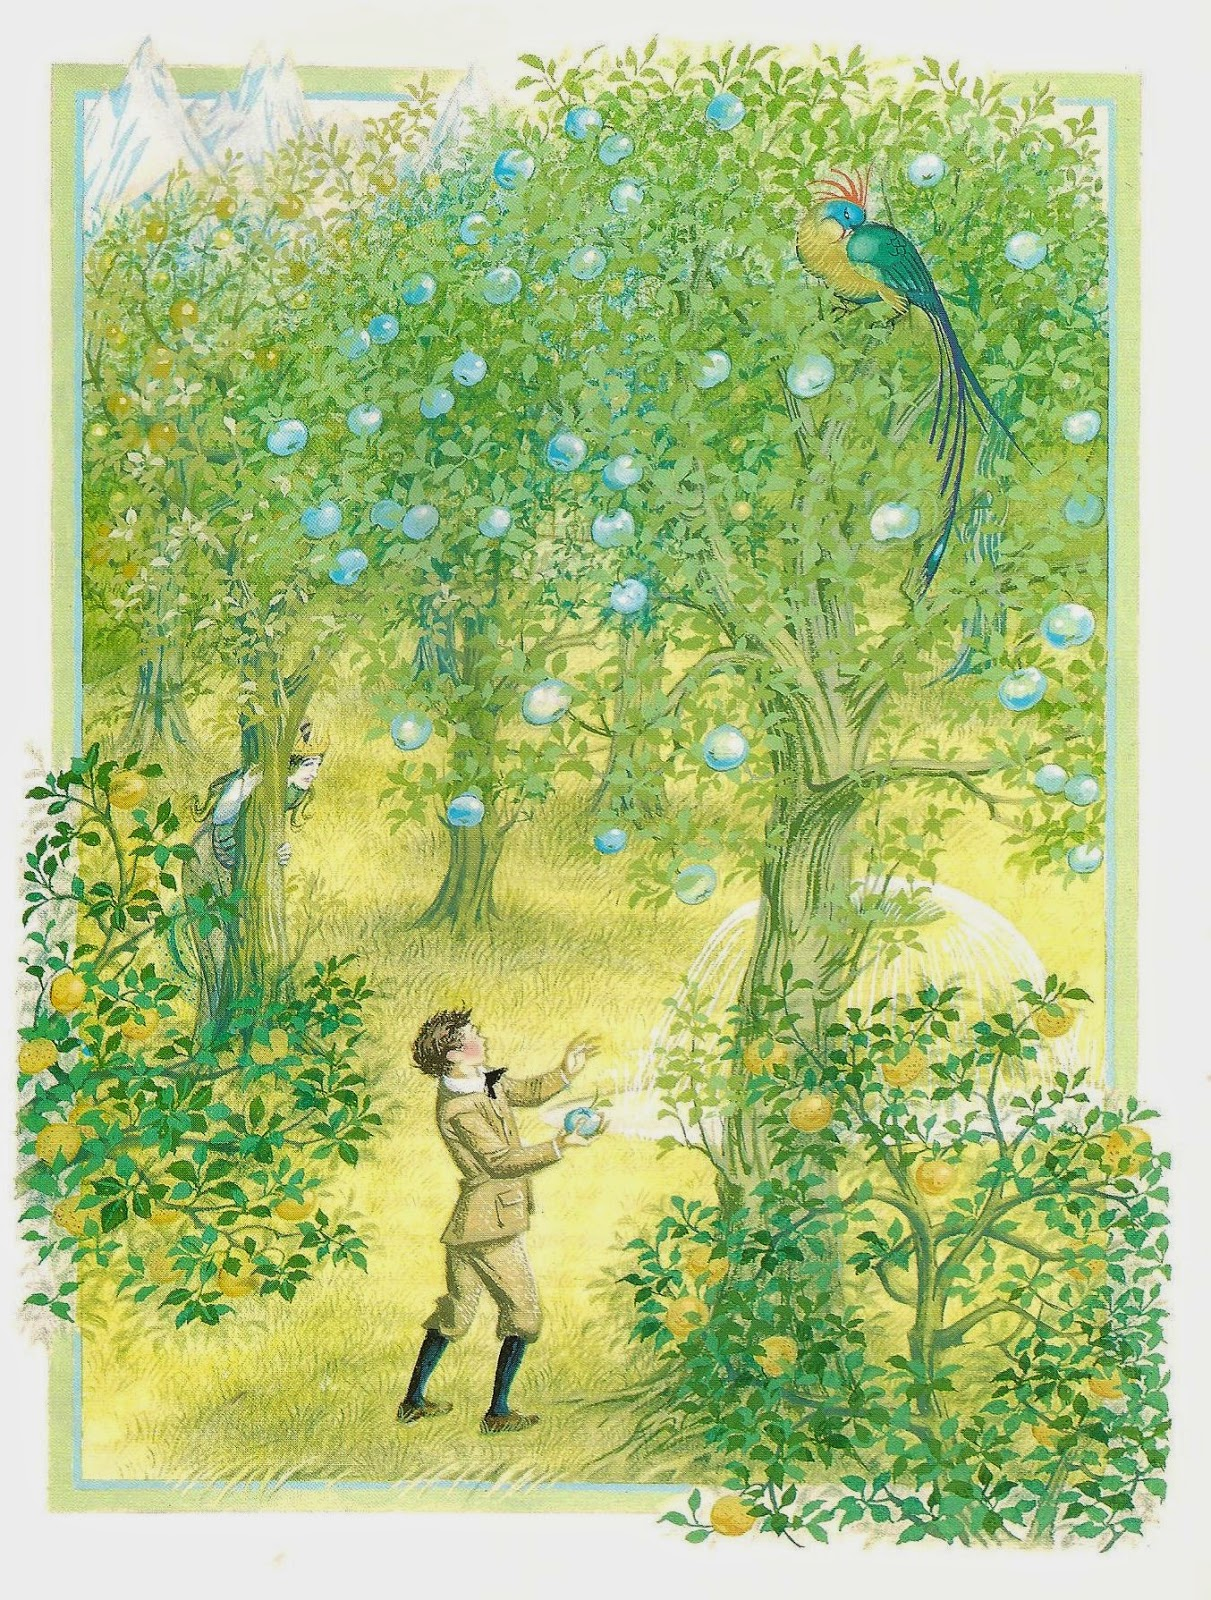 the magicians nephew temptation The magician's nephew, by cs lewis, is a story about the creation of the world it parallels (in many ways) the creation of the world by god in genesis as such, the closest thing it may have to a moral is to resist temptation: eve (and by extensi.